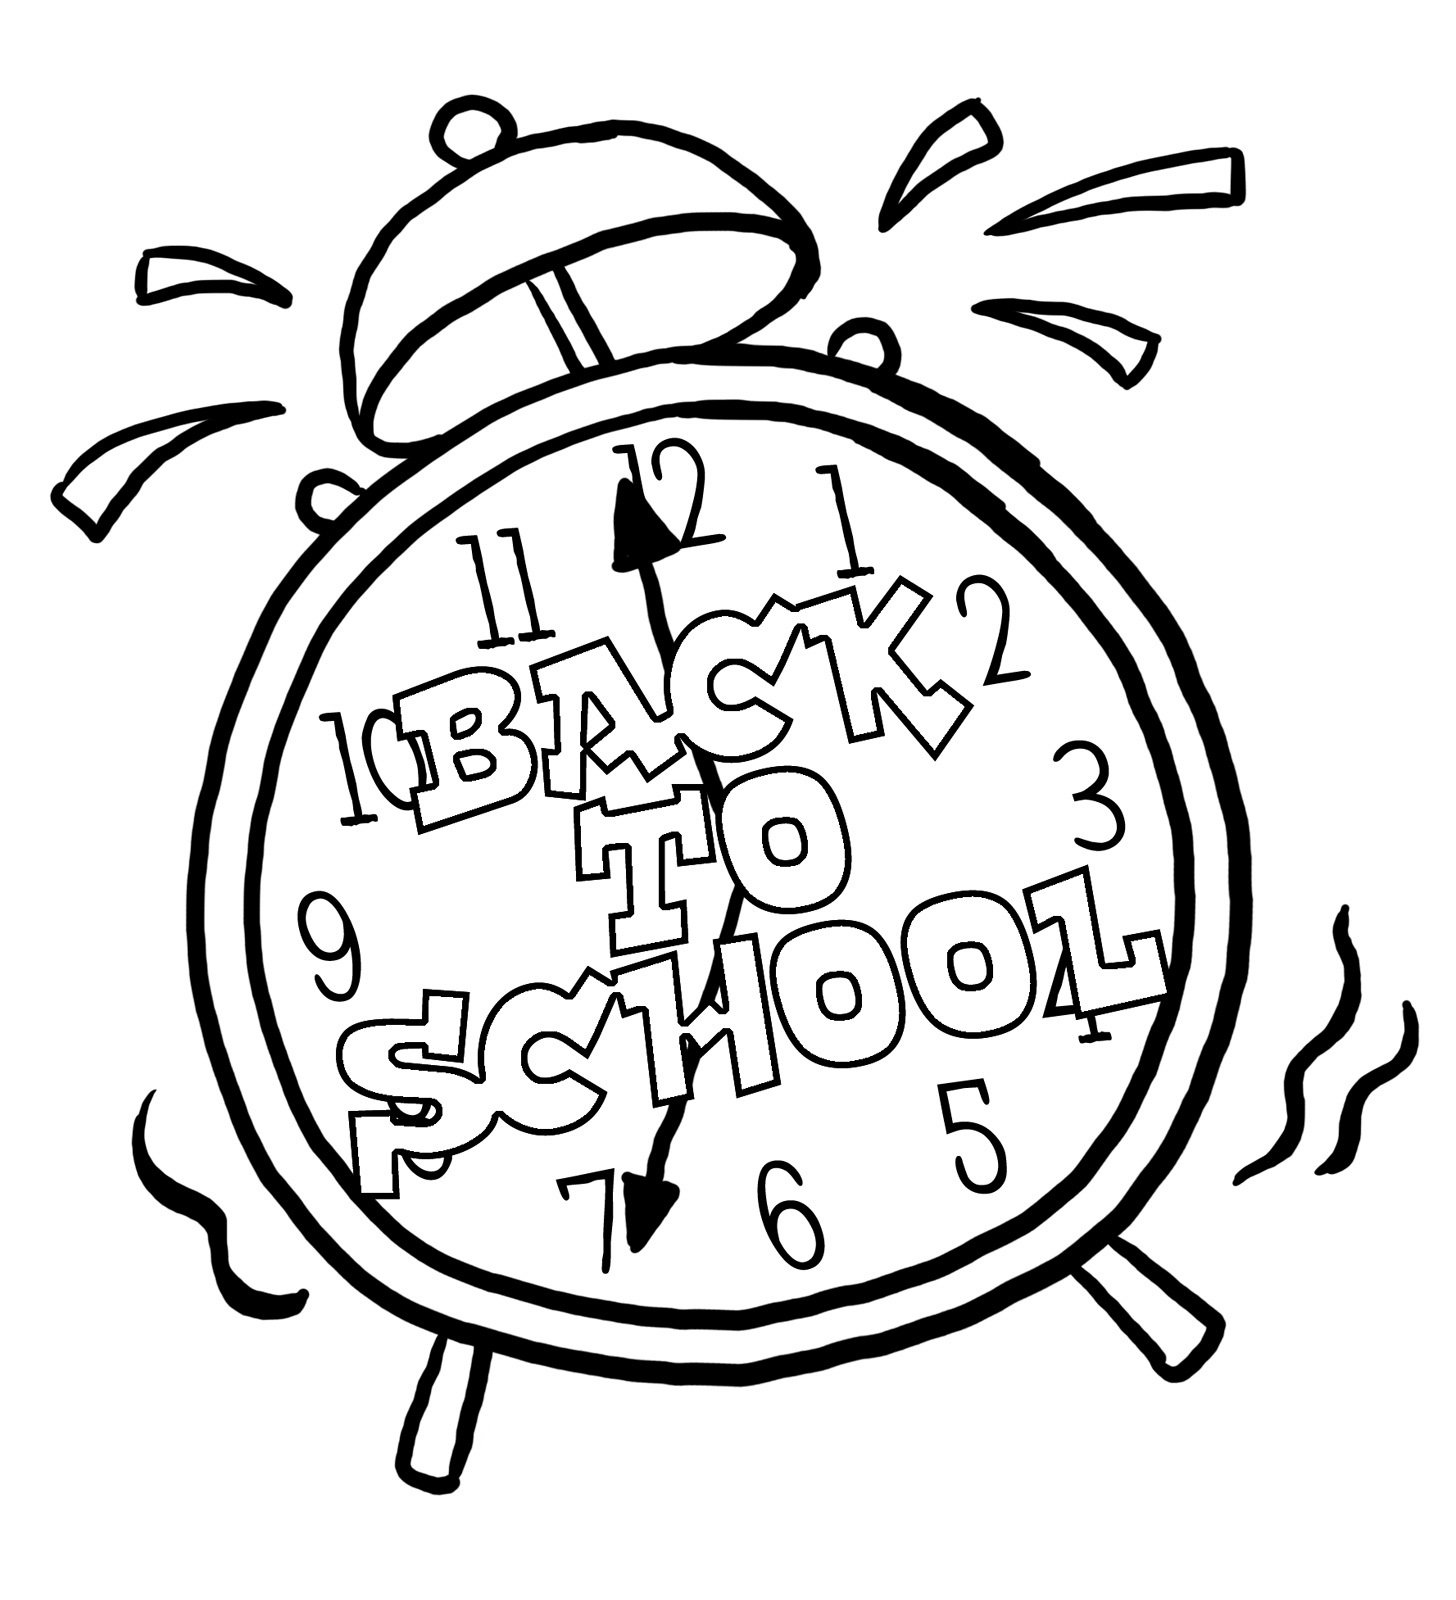 clock coloring sheets - Back To School Coloring Pages Printable